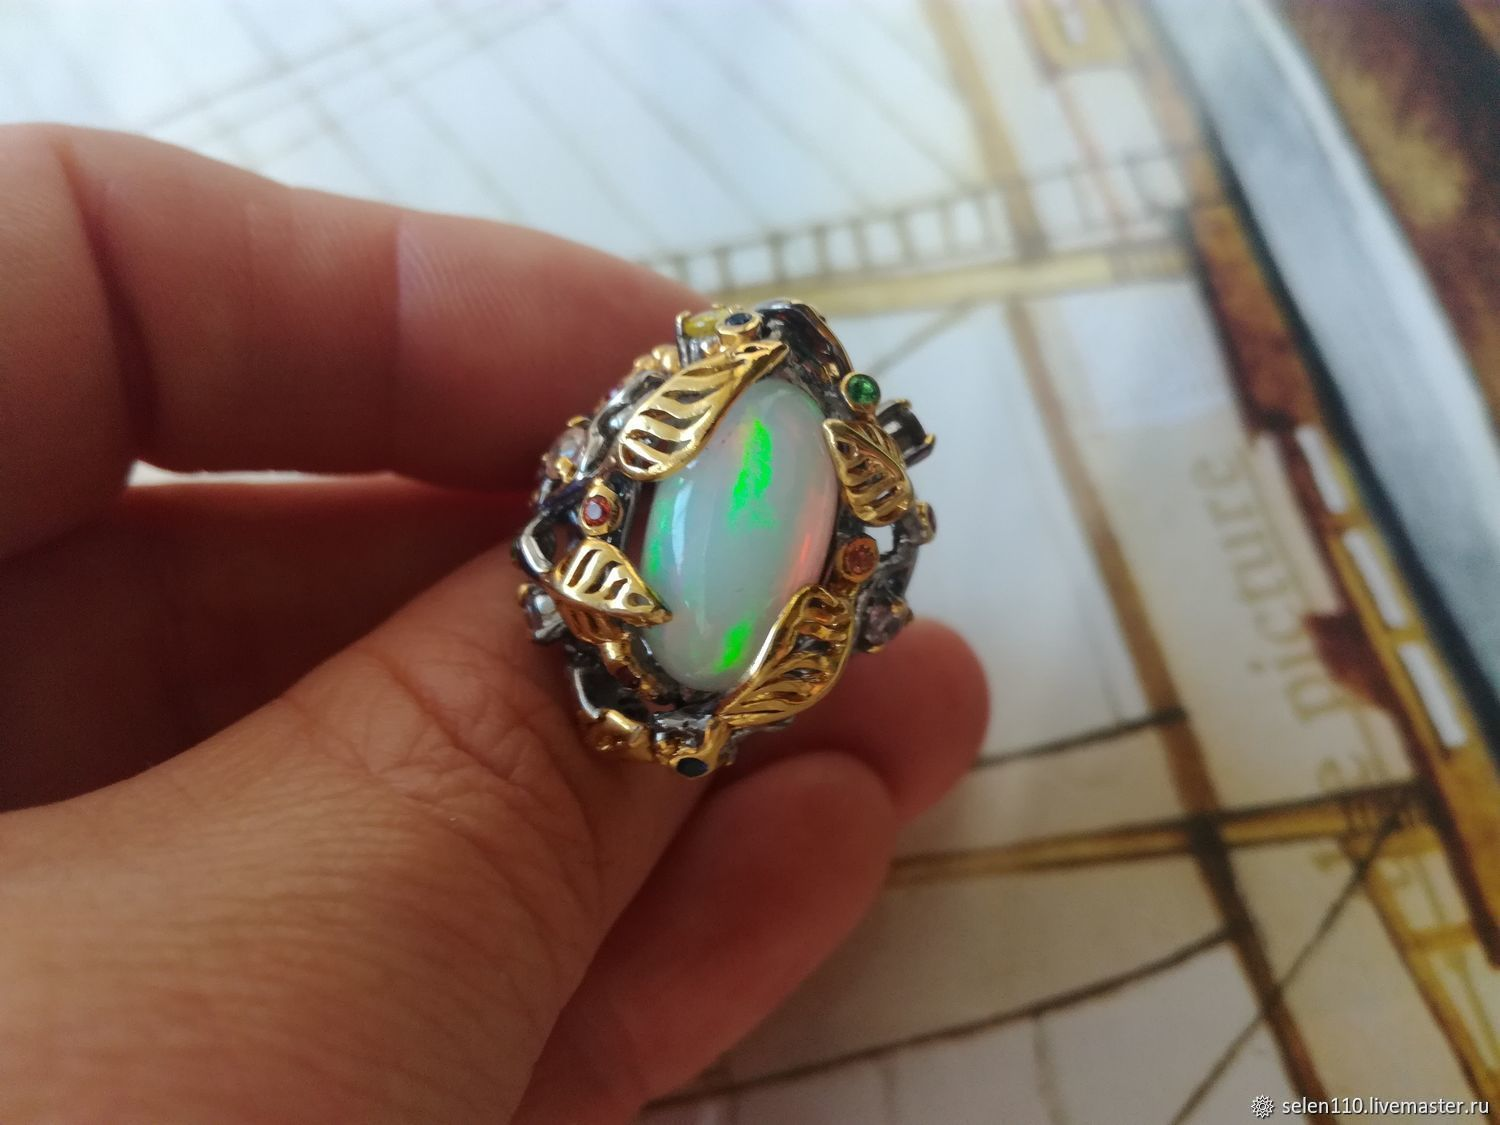 Ring 'the Nymph' with a fiery opal, Rings, Voronezh,  Фото №1